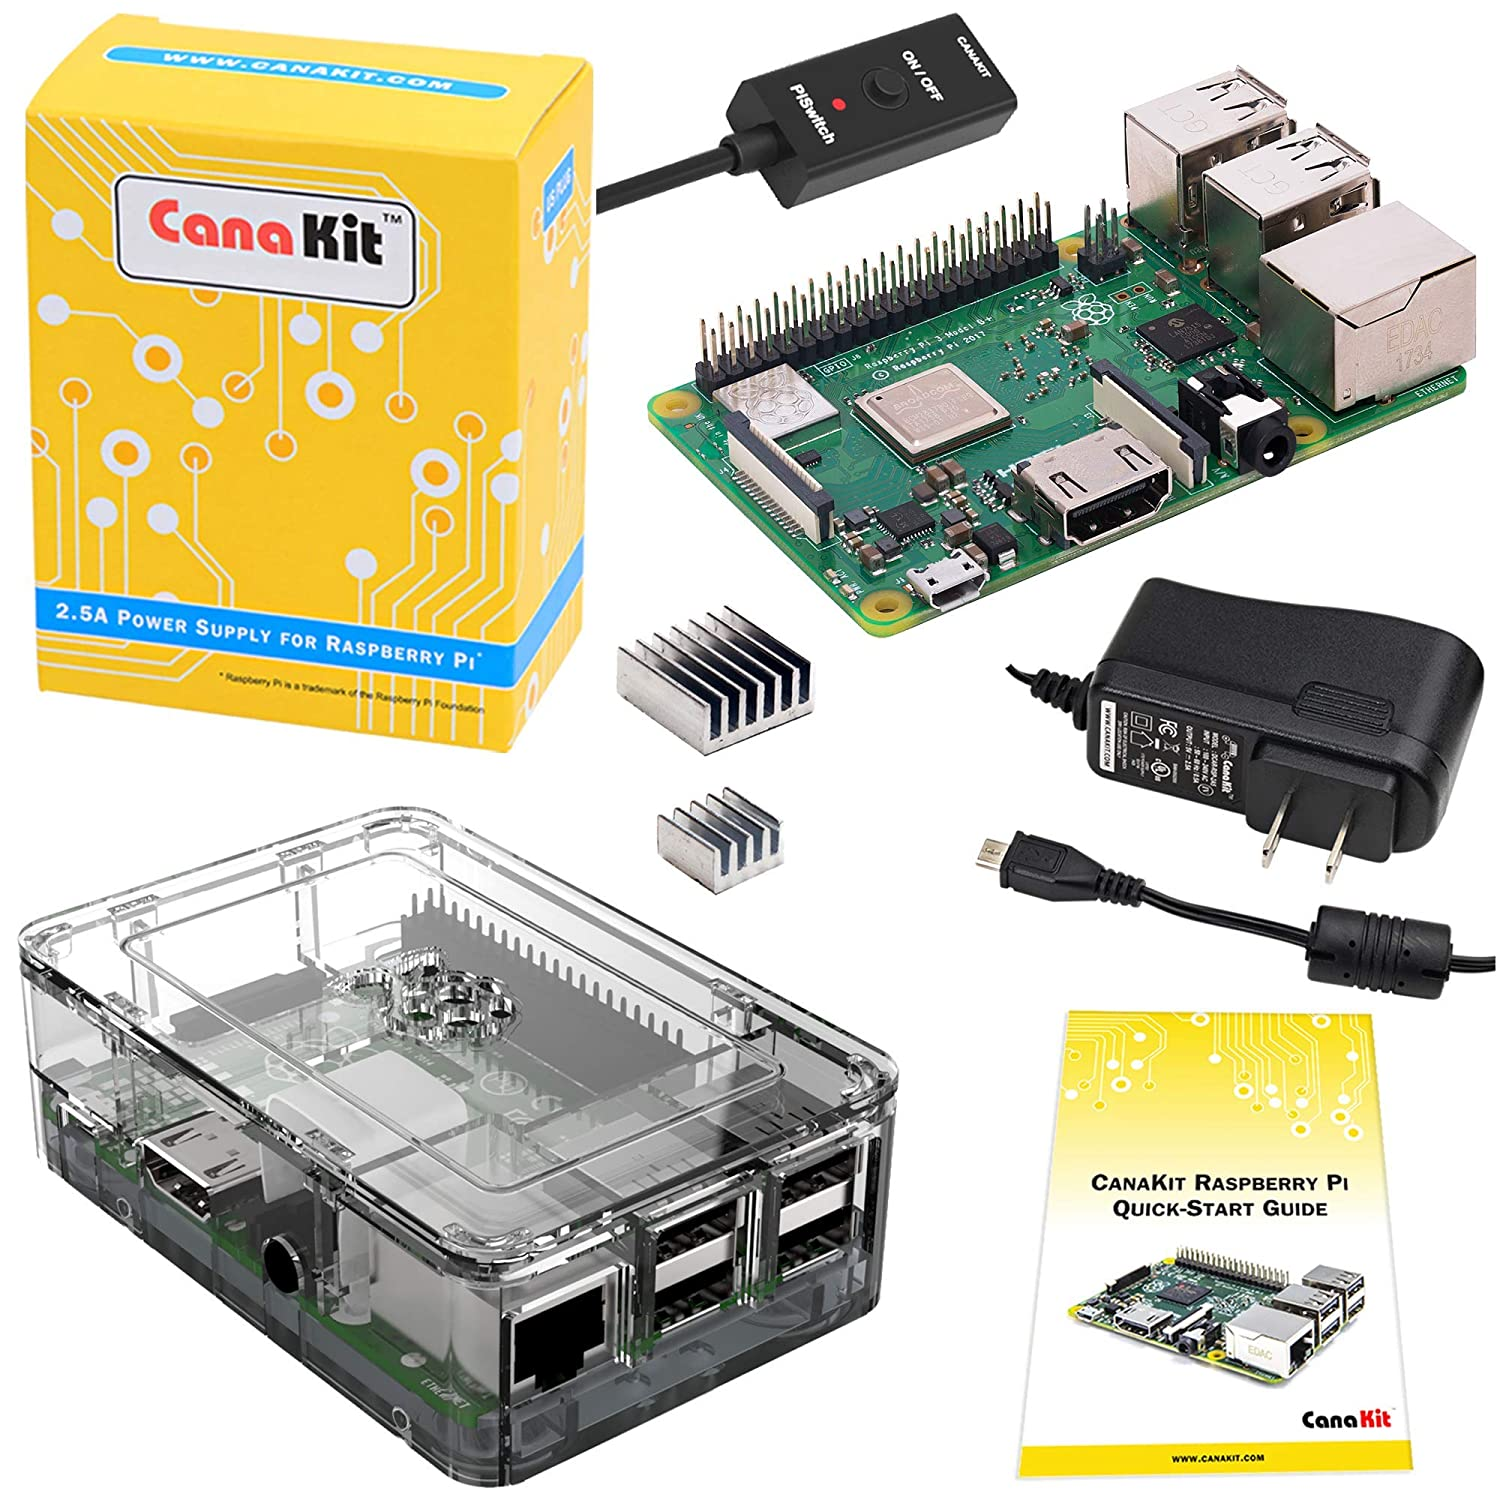 CanaKit Raspberry Pi 3 B+ (B Plus) with Premium Clear Case and 2 5A Power  Supply